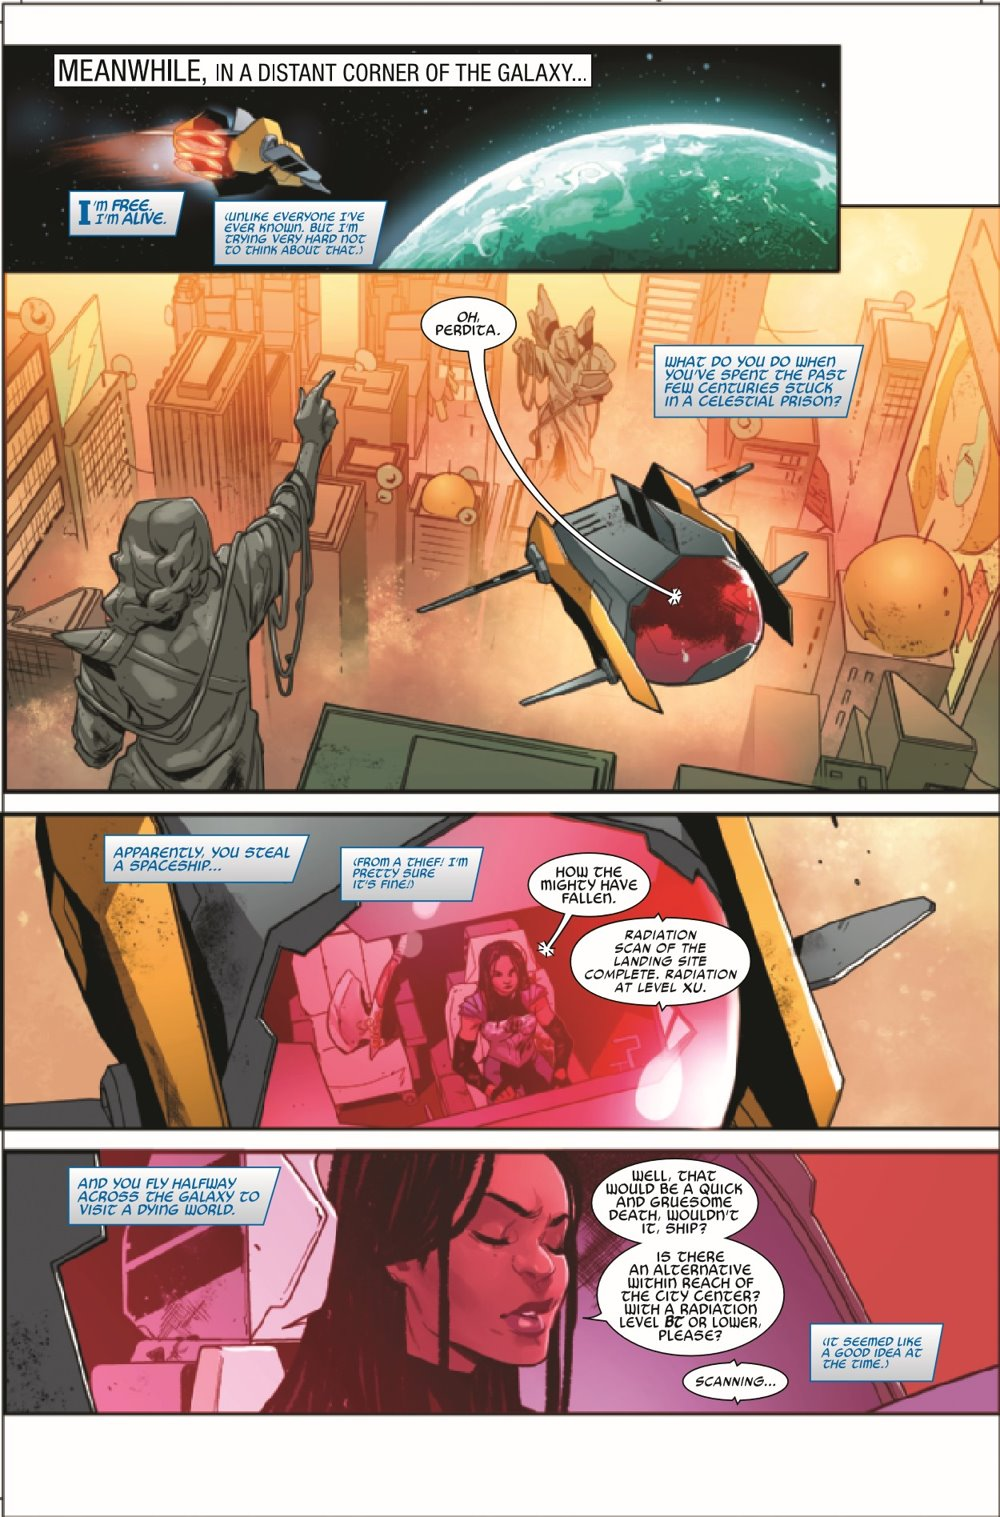 MIGHTYVALKYRIES2021001_Preview-6 ComicList Previews: THE MIGHTY VALKYRIES #1 (OF 5)